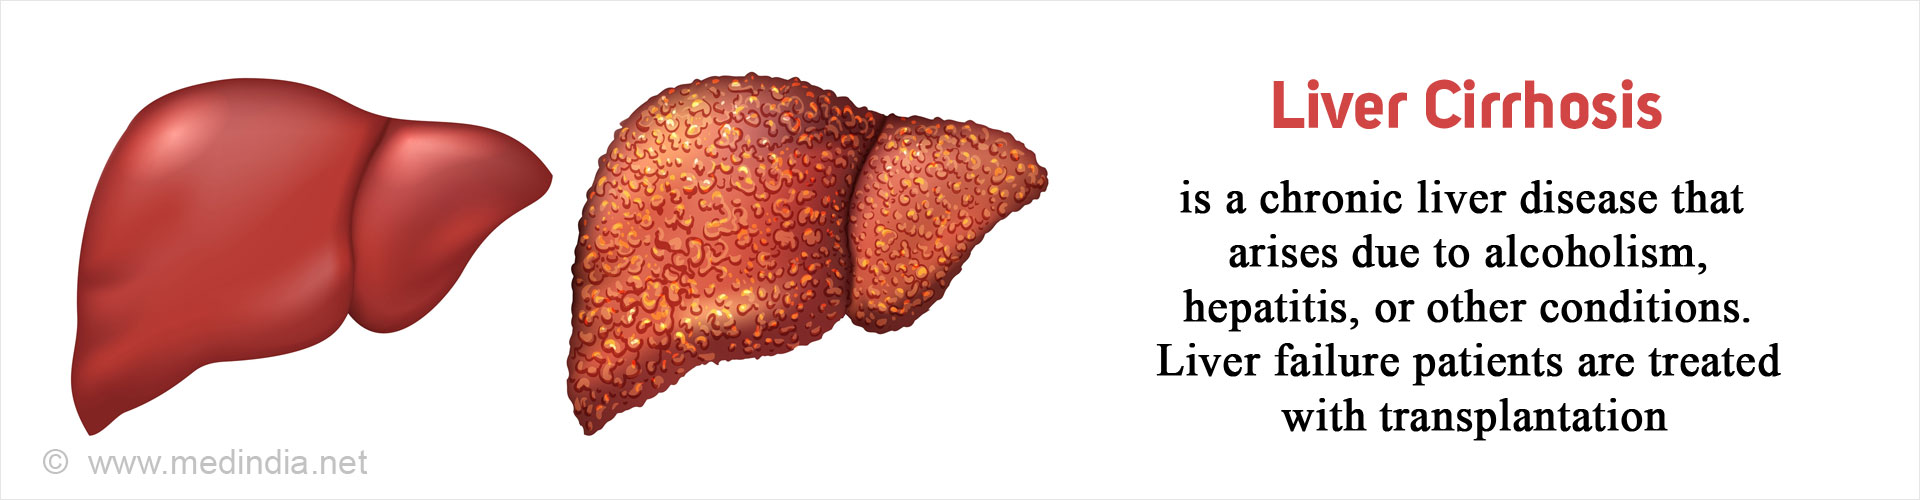 Liver Cirrhosis - Causes, Symptoms, Diagnosis, Treatment & Prevention